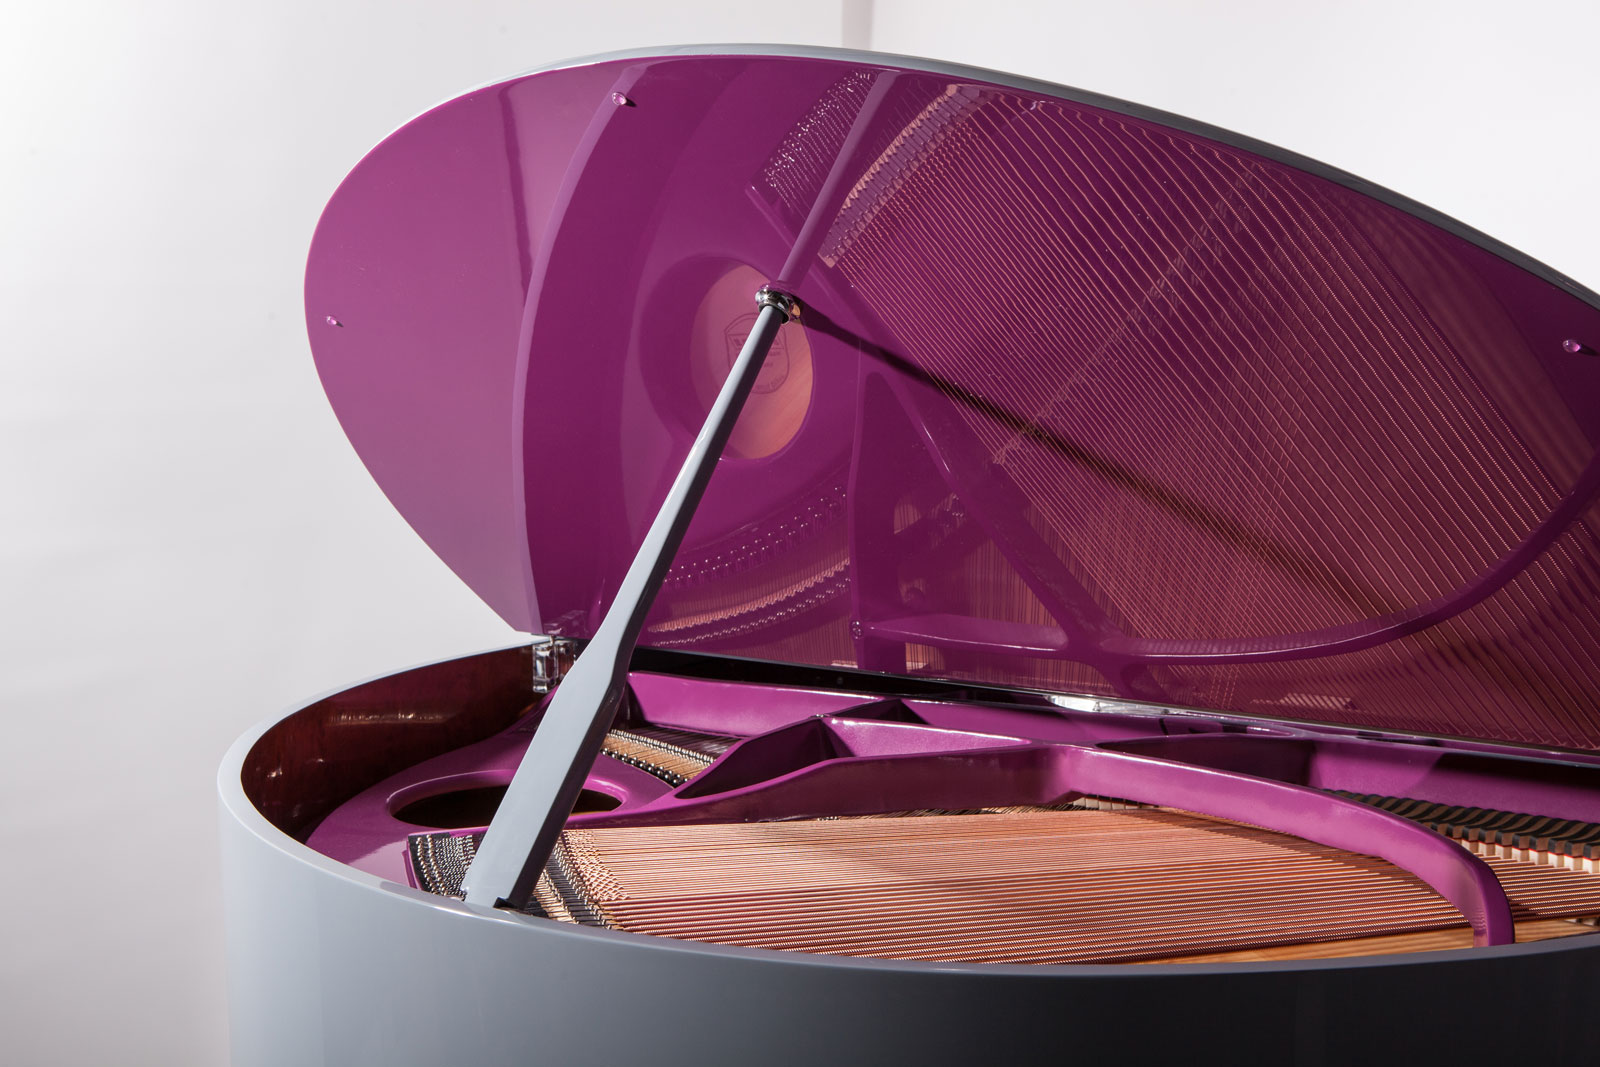 Edelweiss Lets You Tinkle With The Look Of Their Self-Playing Pianos 6